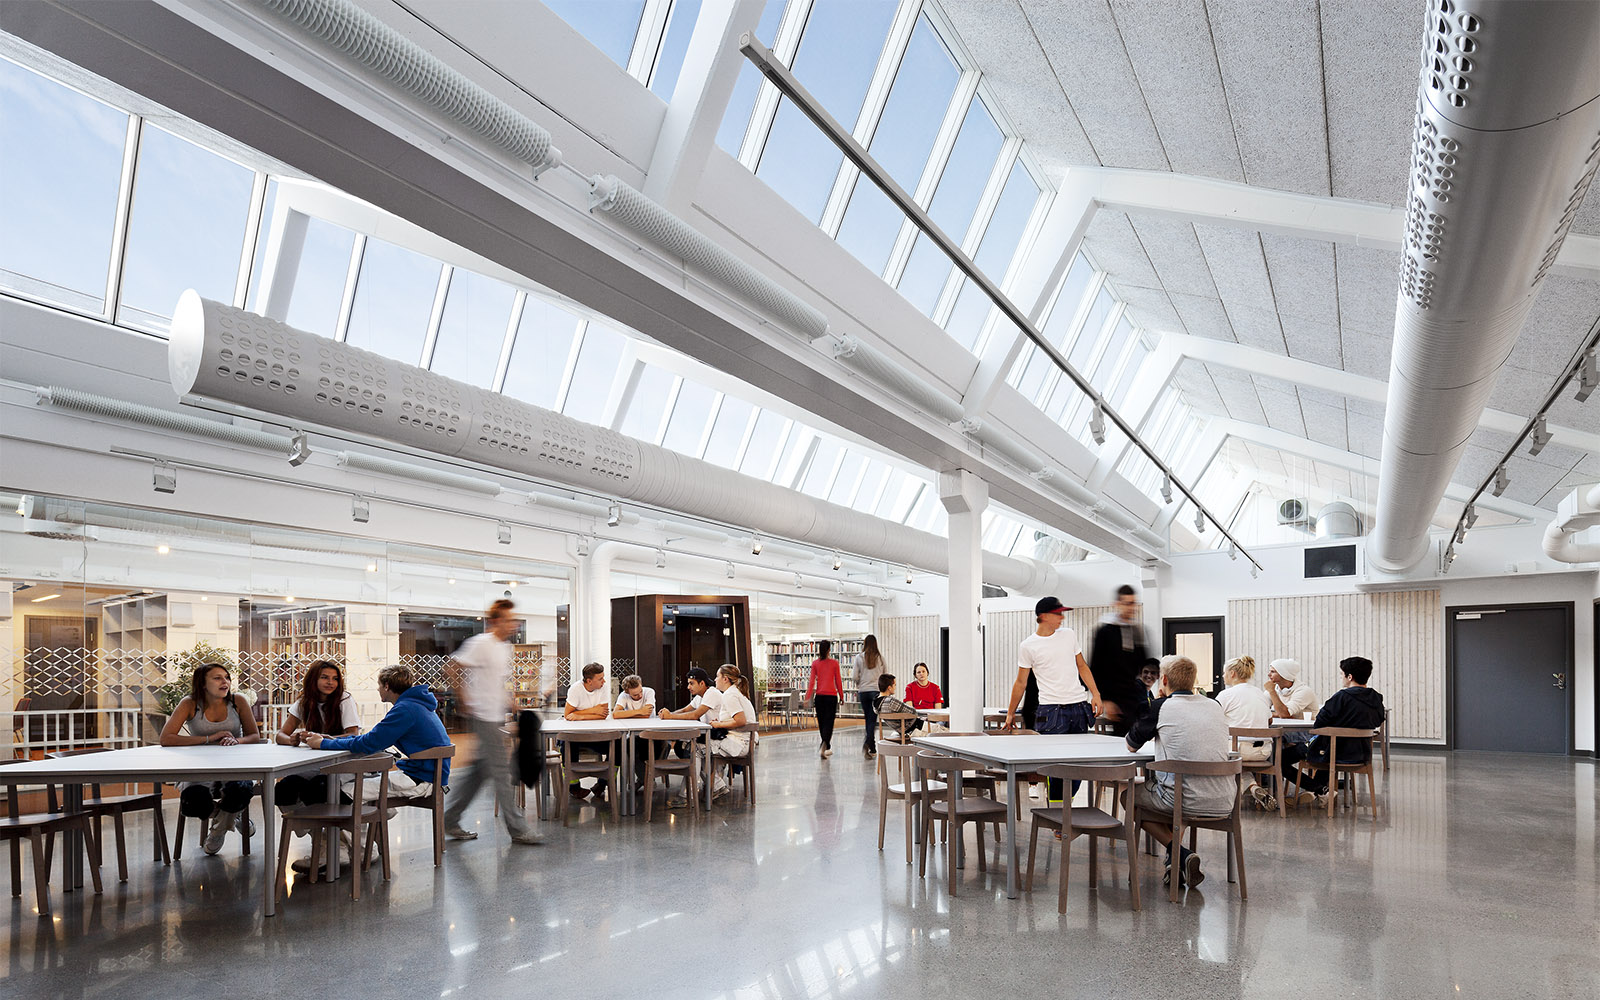 Rebuilding a school's character with plenty of daylight